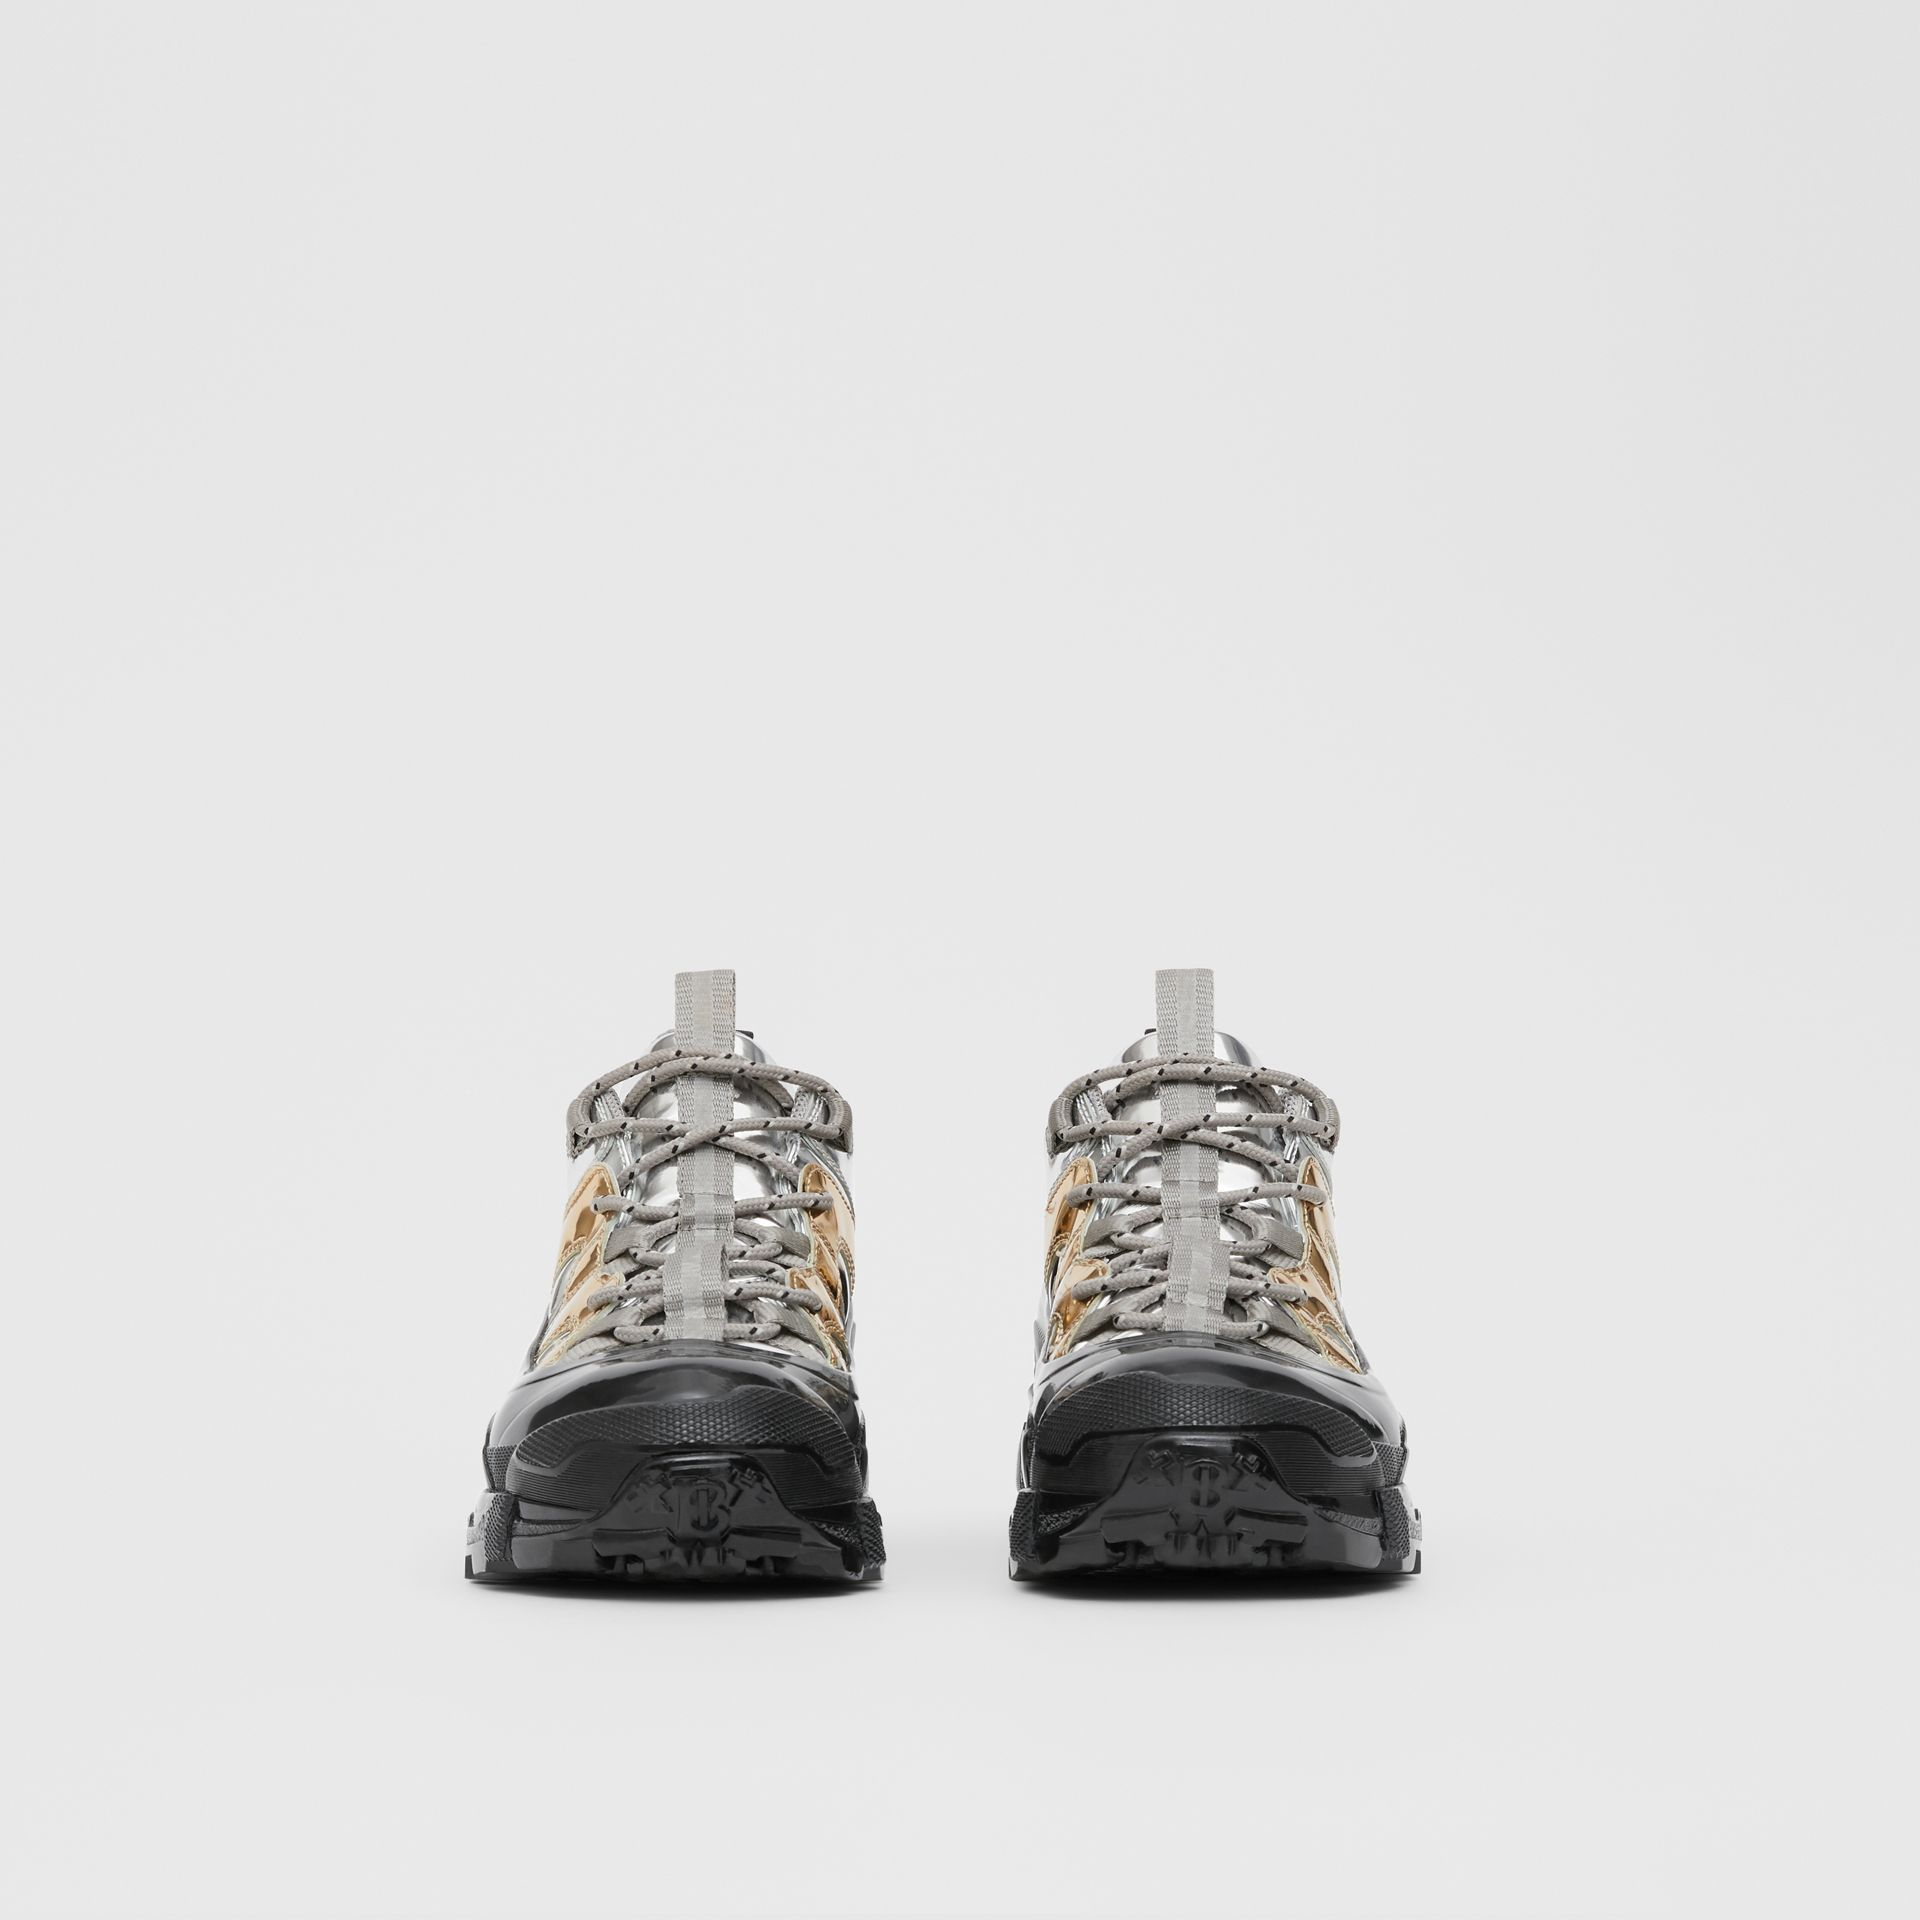 Two-tone Metallic Leather Arthur Sneakers in Silver/gold - Women | Burberry United Kingdom - gallery image 2